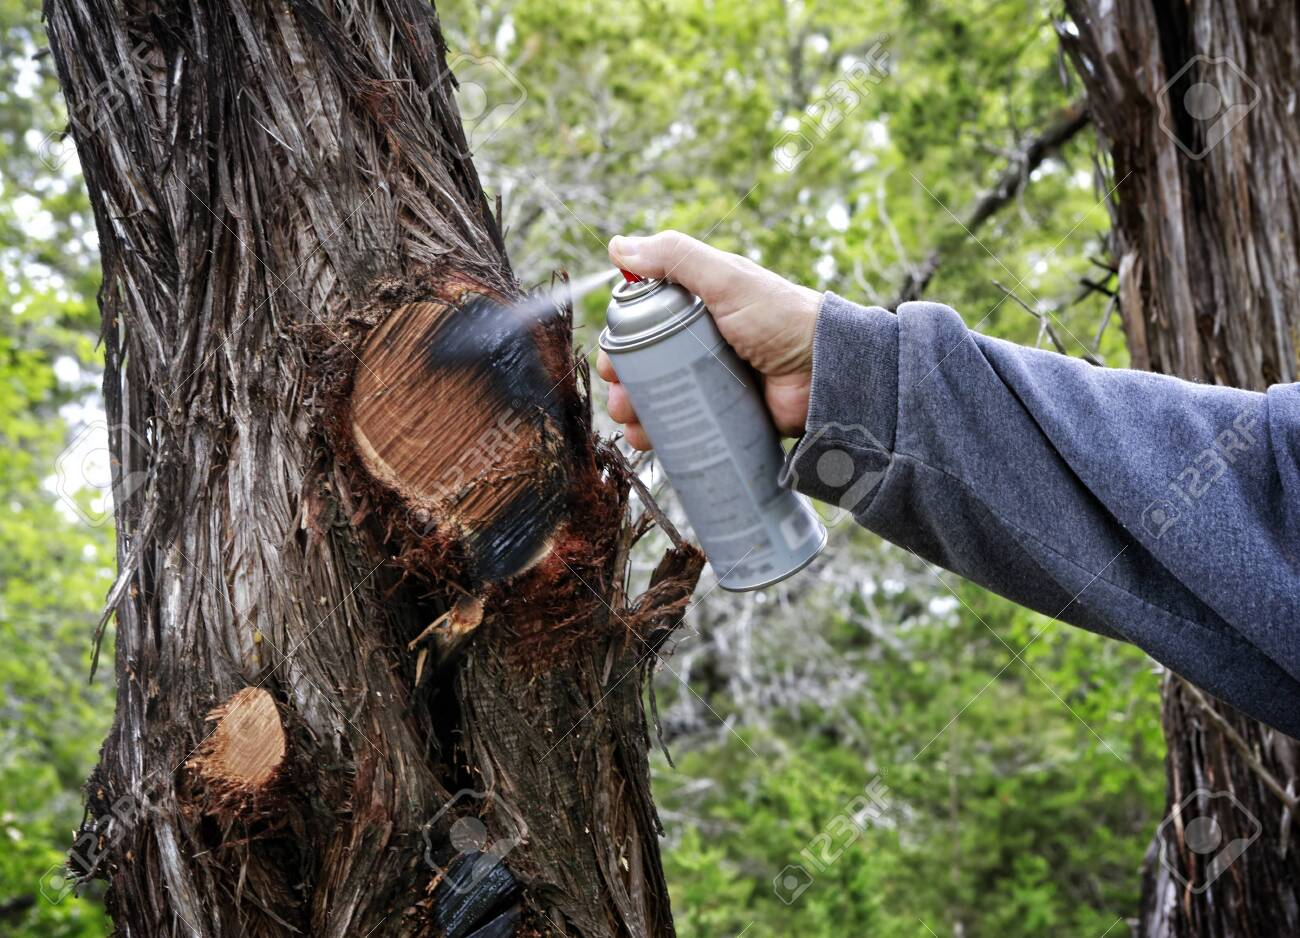 Spray with paint after cutting off tree branches. - 145878282